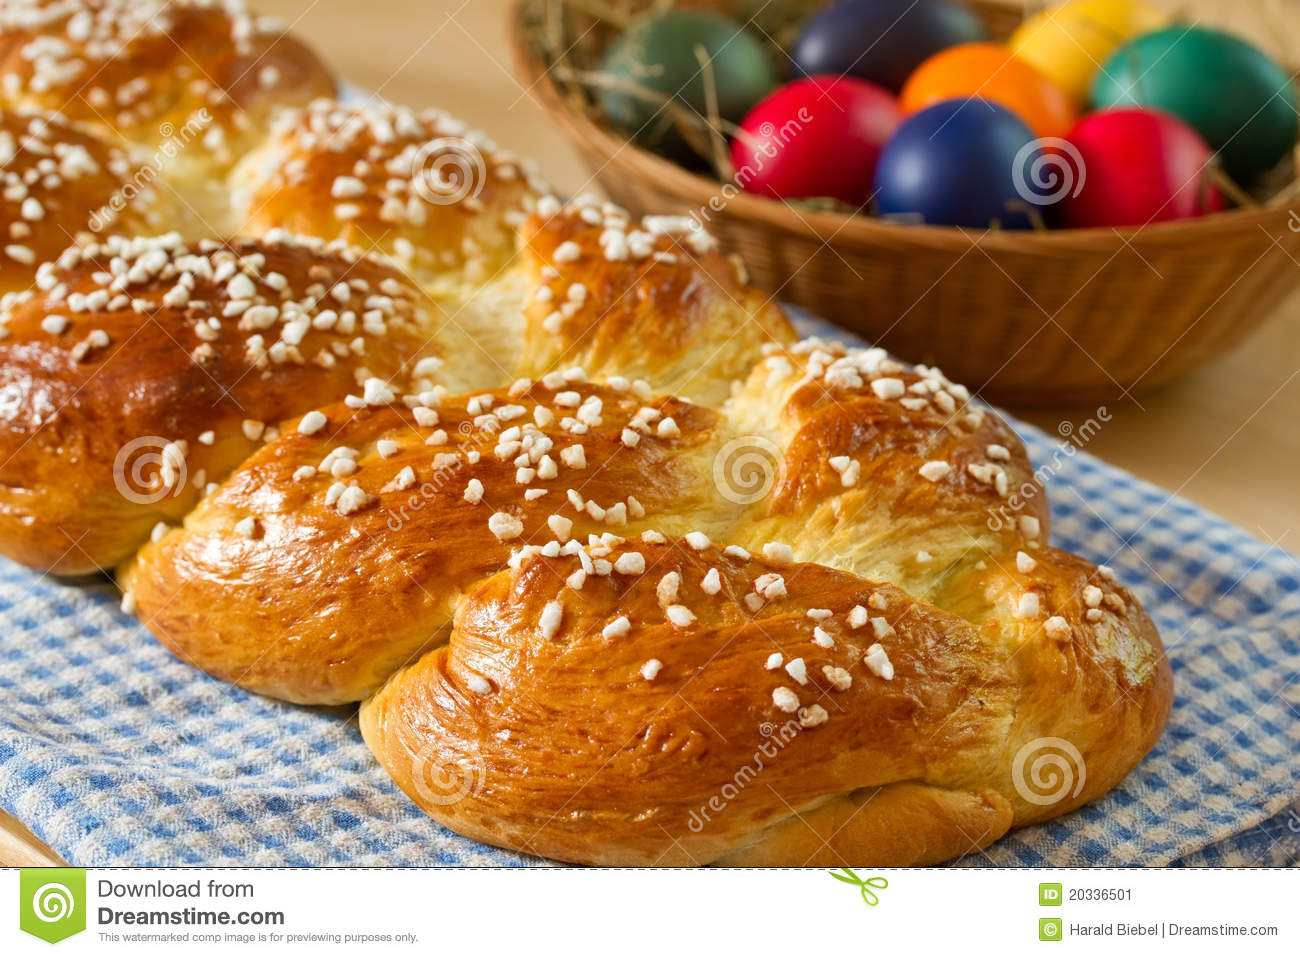 Sweet Braided Bread With Easter Eggs Stock Image - Image: 20336501